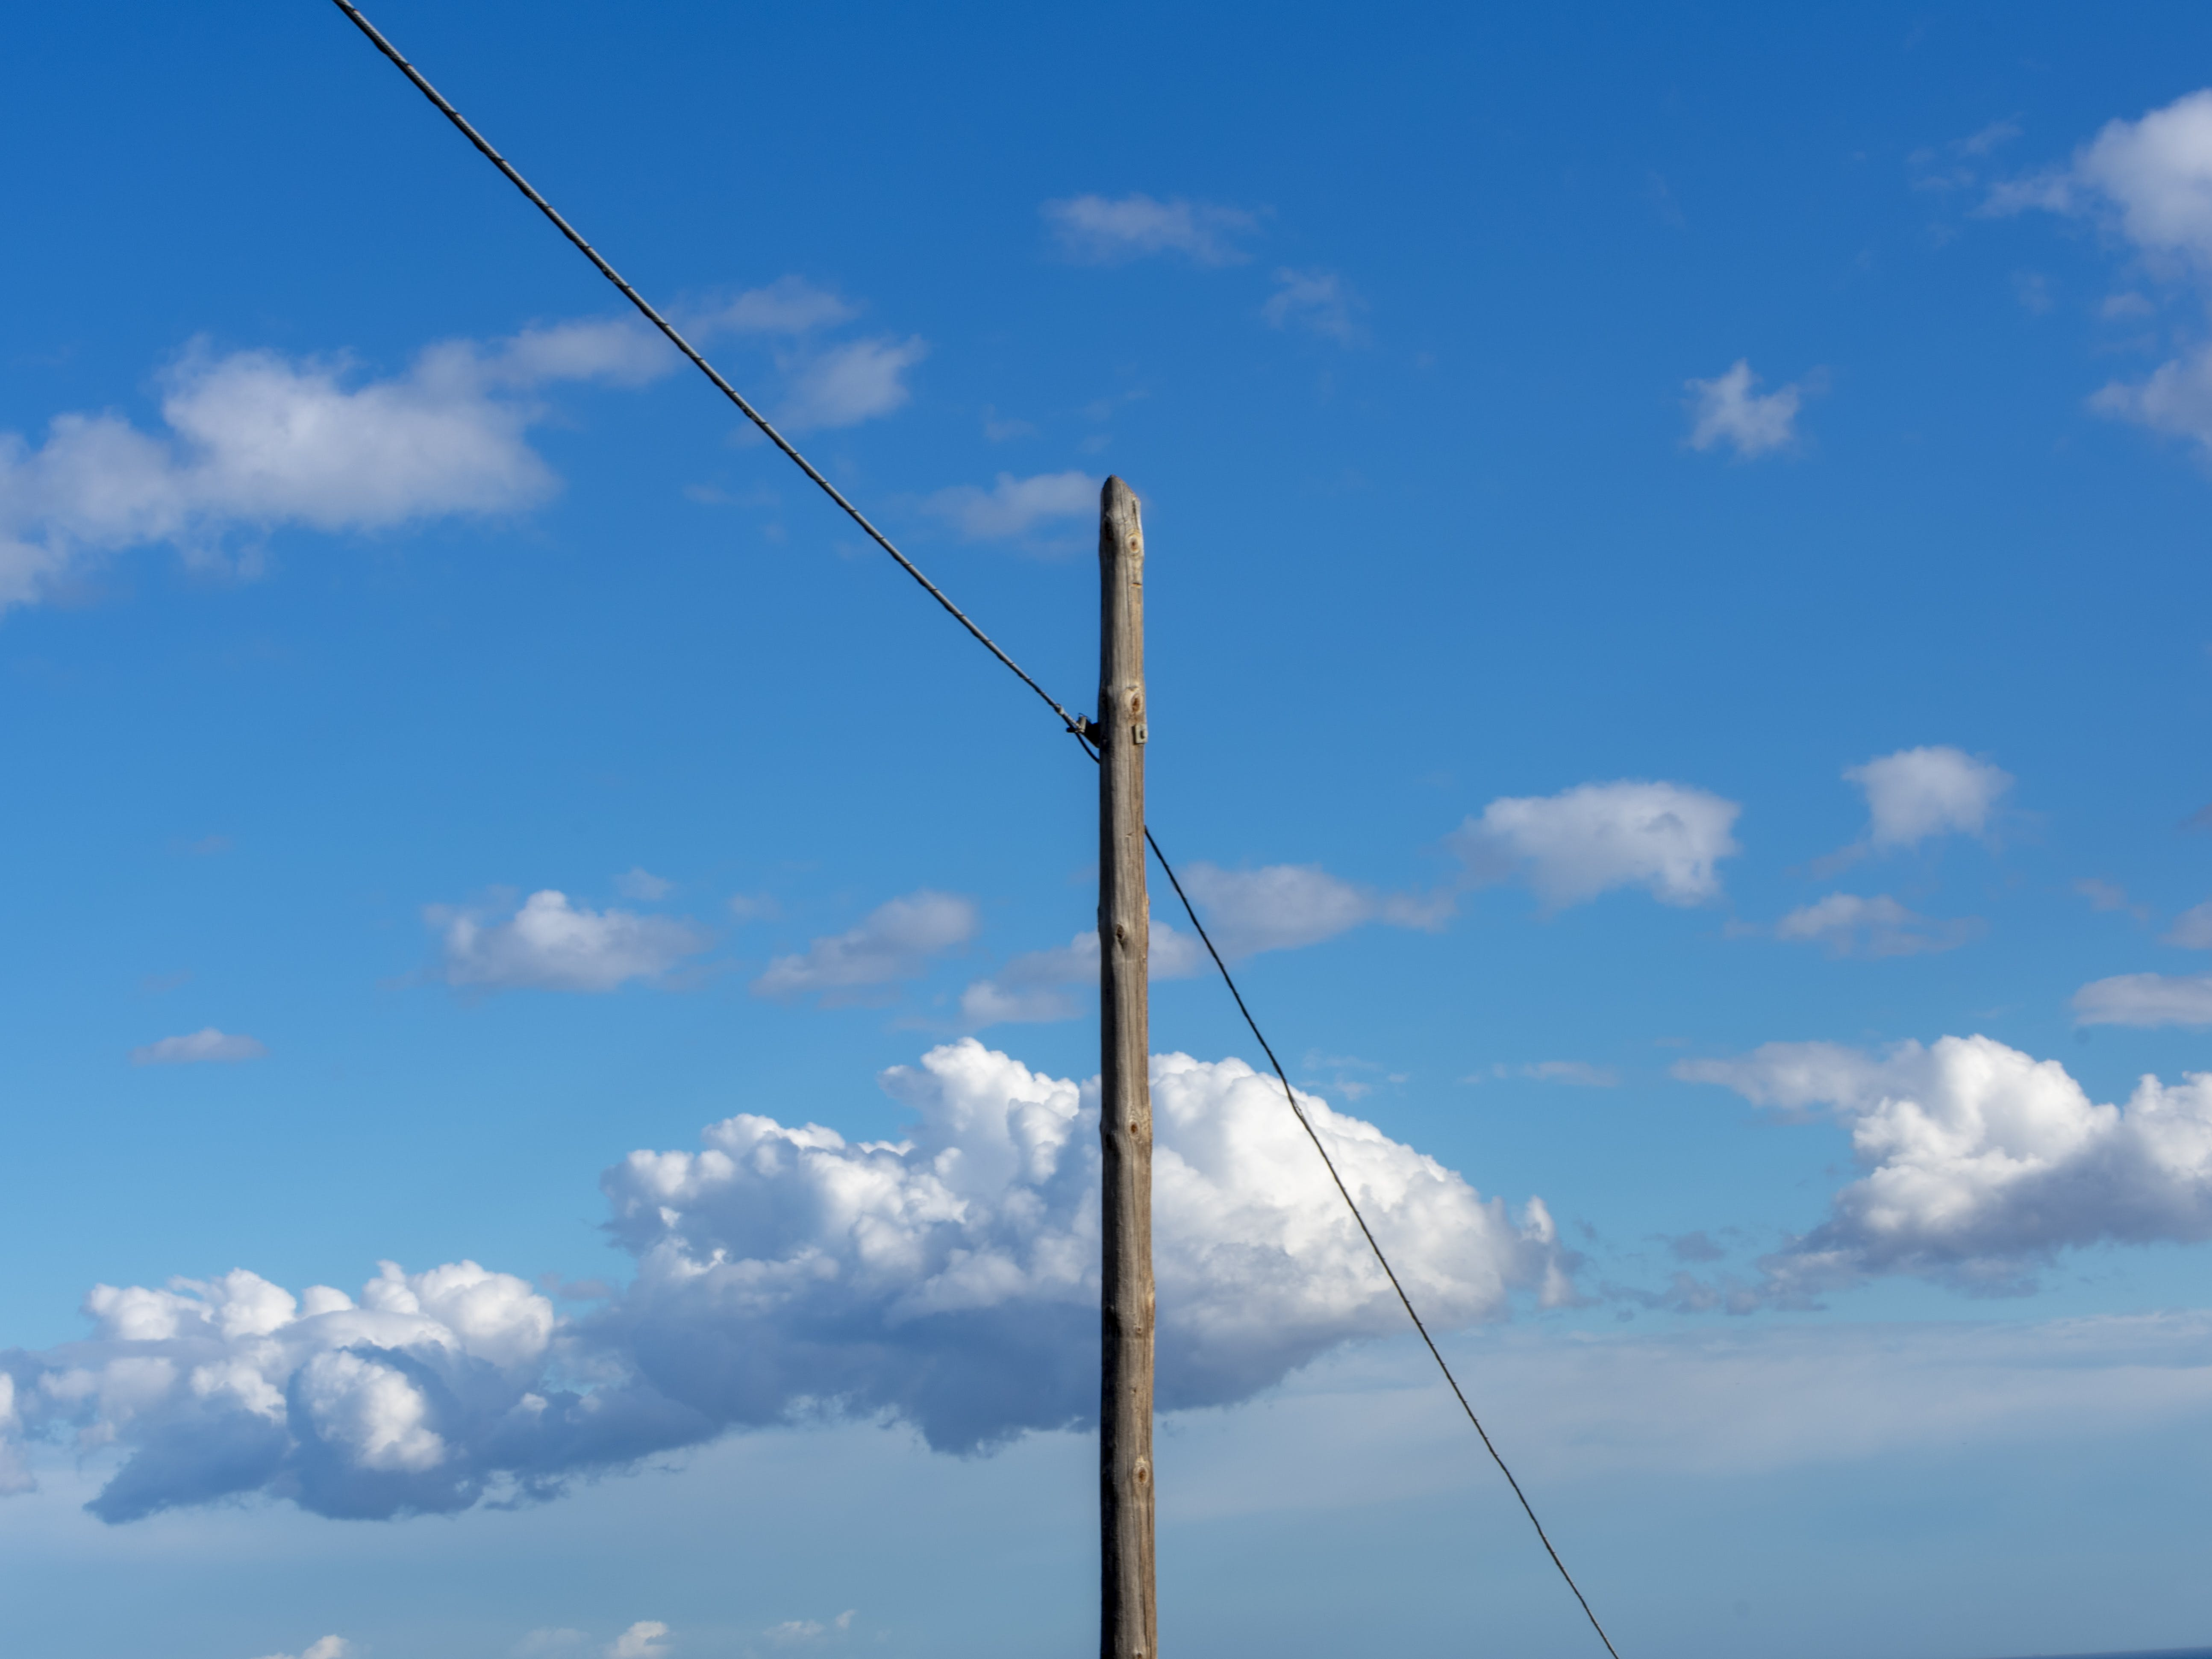 Free stock photo of blue sky, electric pole, white clouds